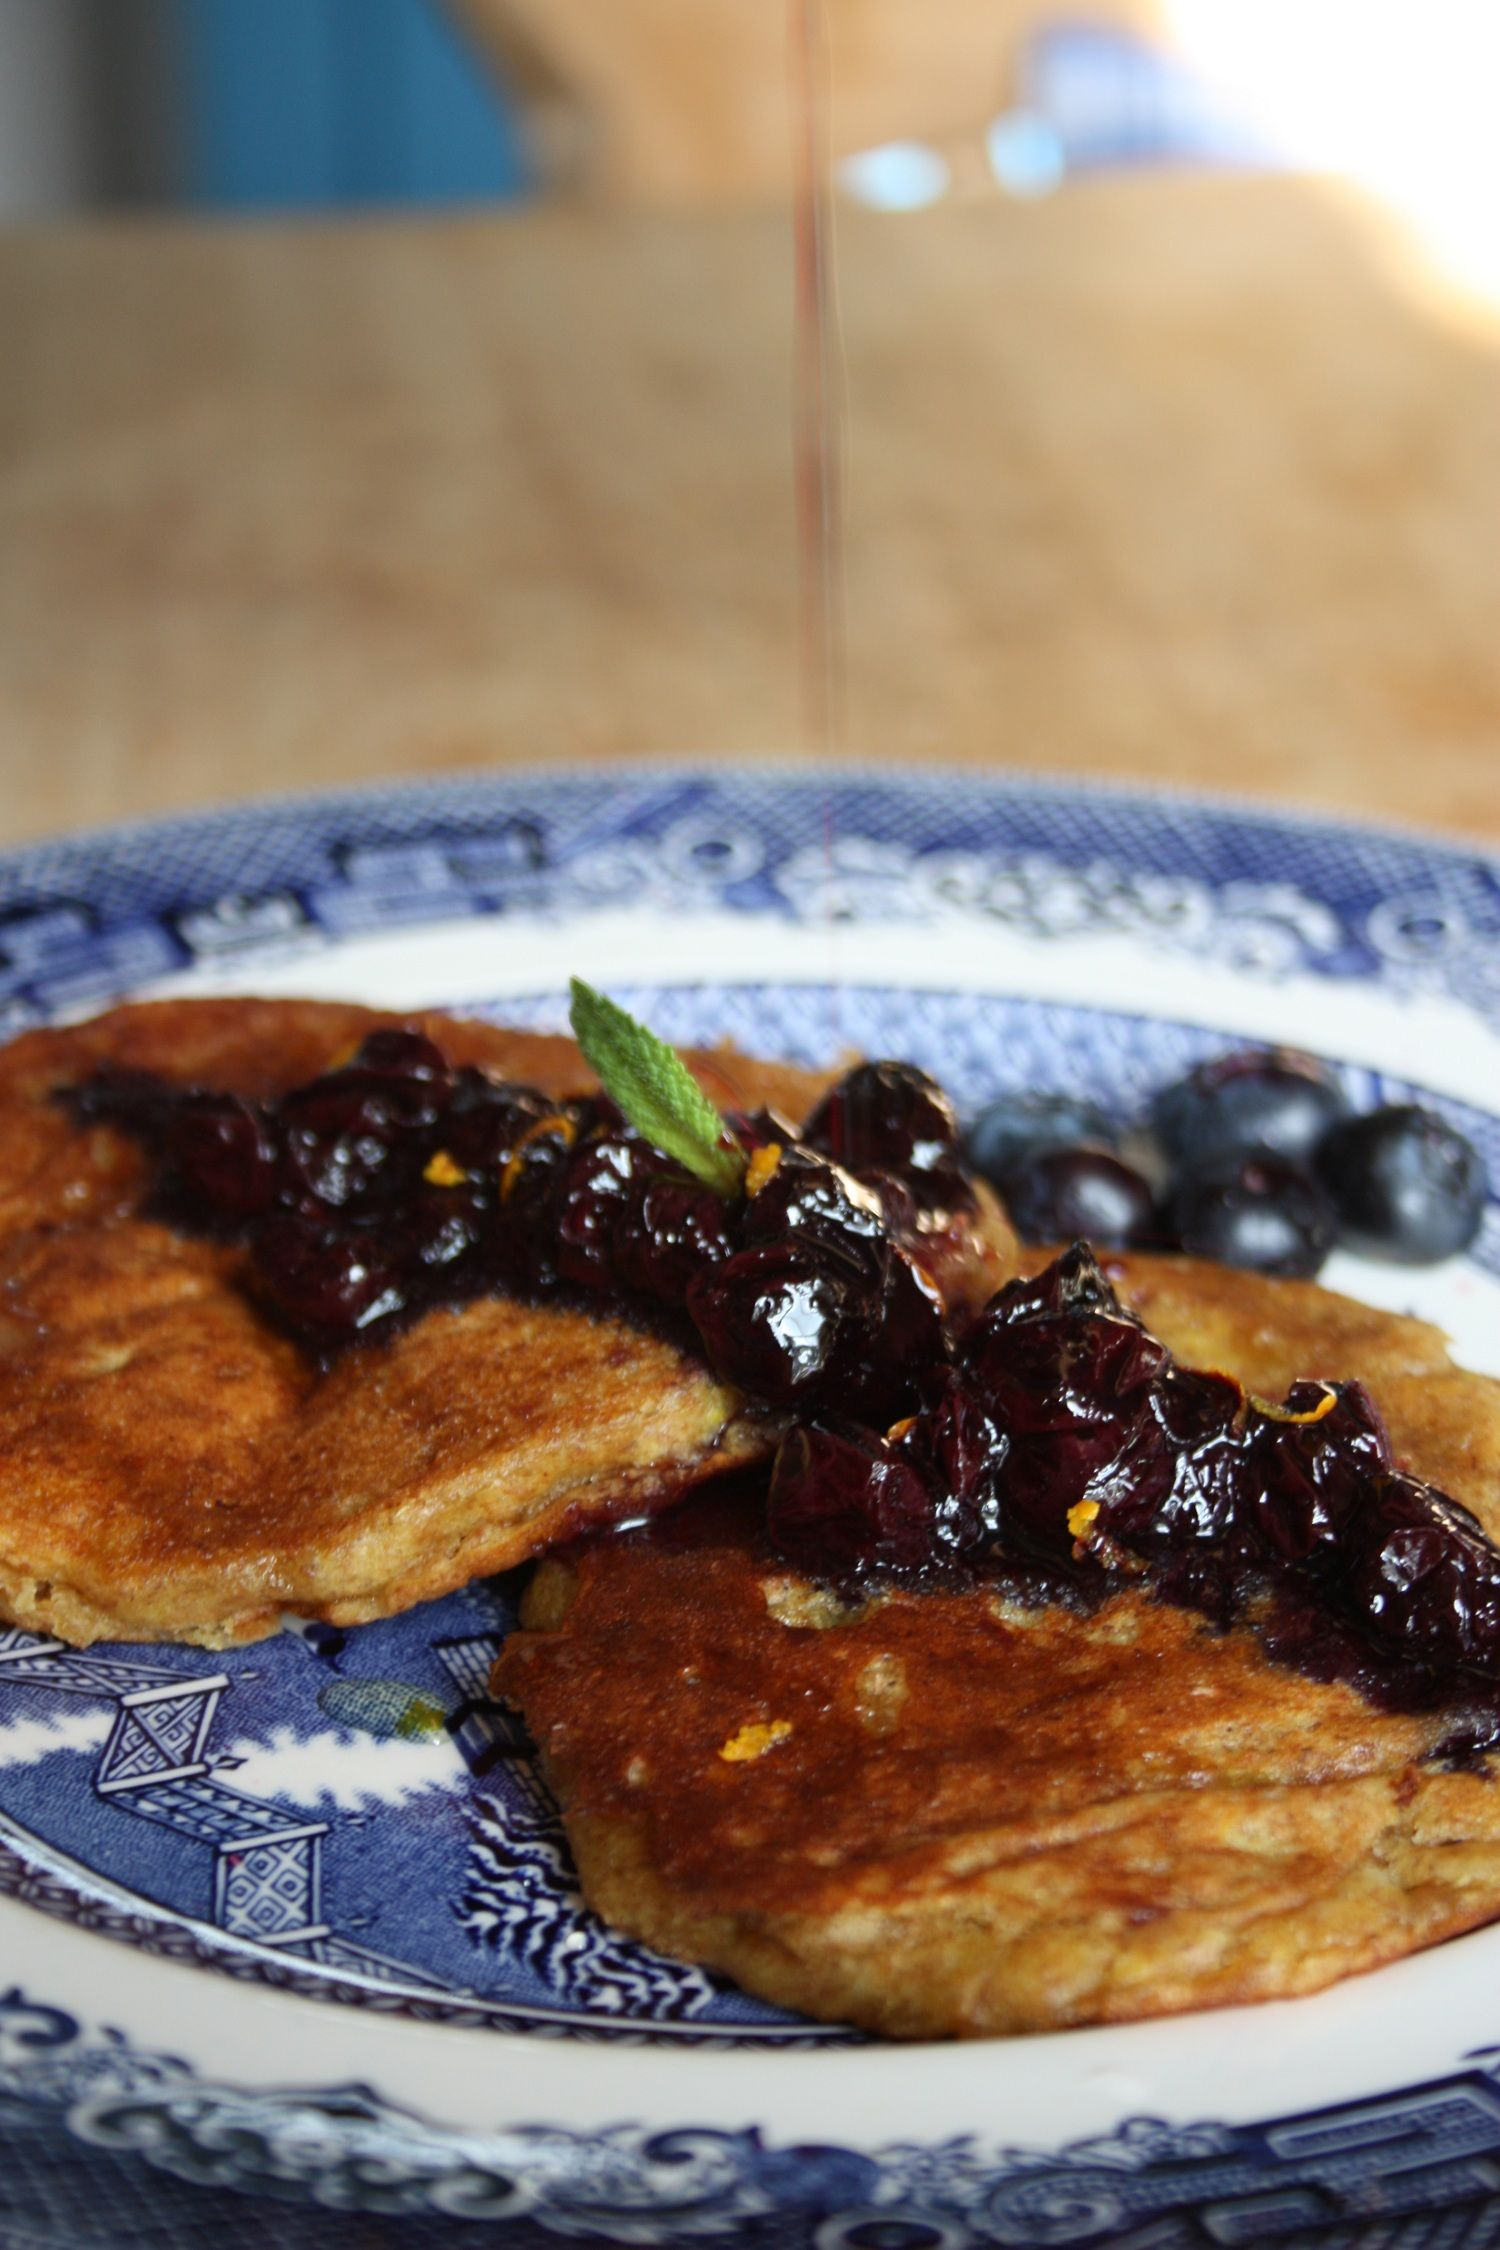 Buckwheat pamcakes with blueberry compote